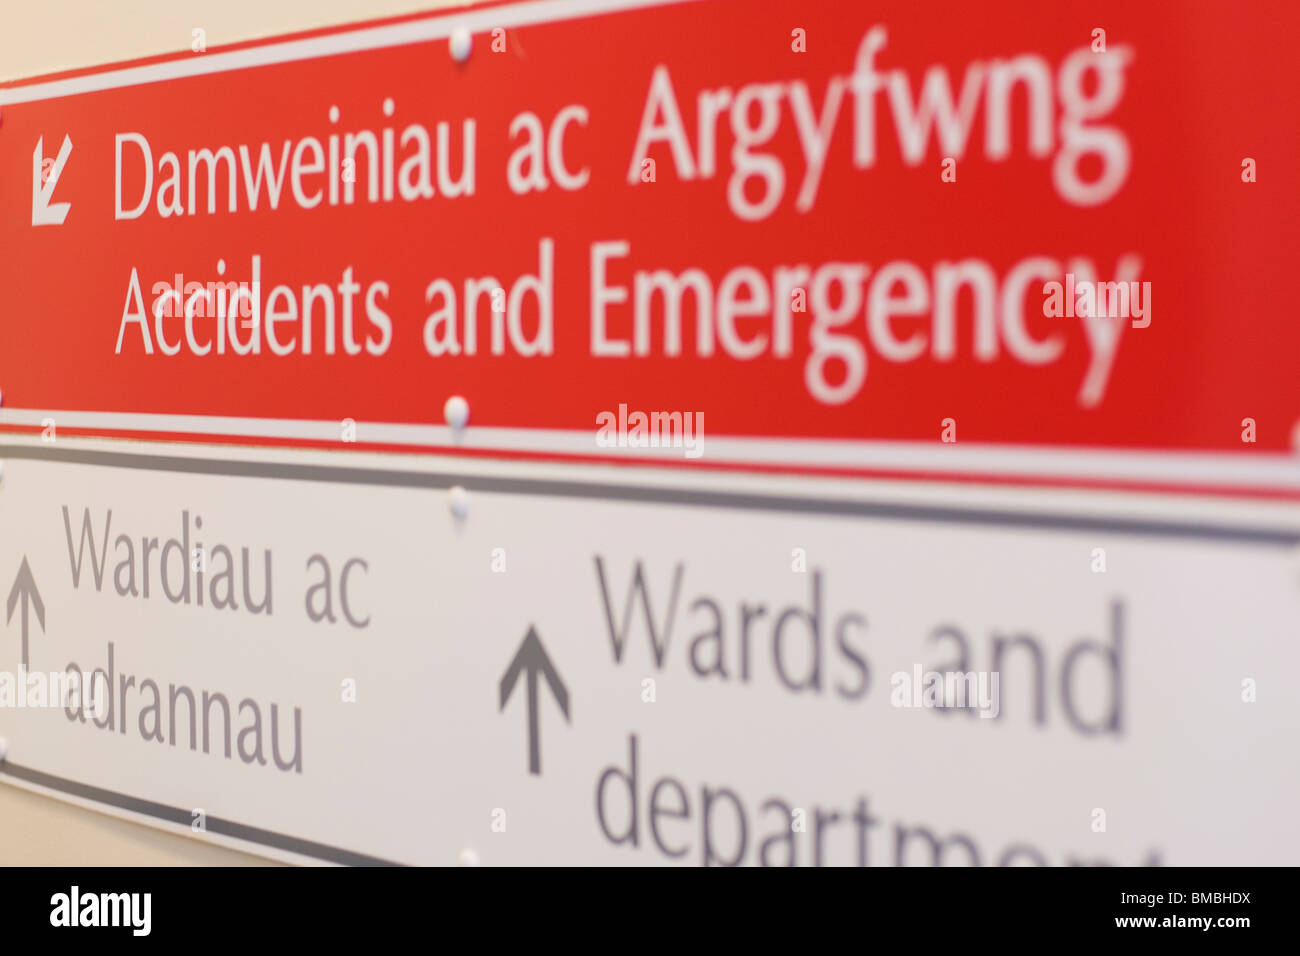 A sign for accidents and emergency in Aberystwyth Bronglais hospital, shot with a shallow depth of field. - Stock Image